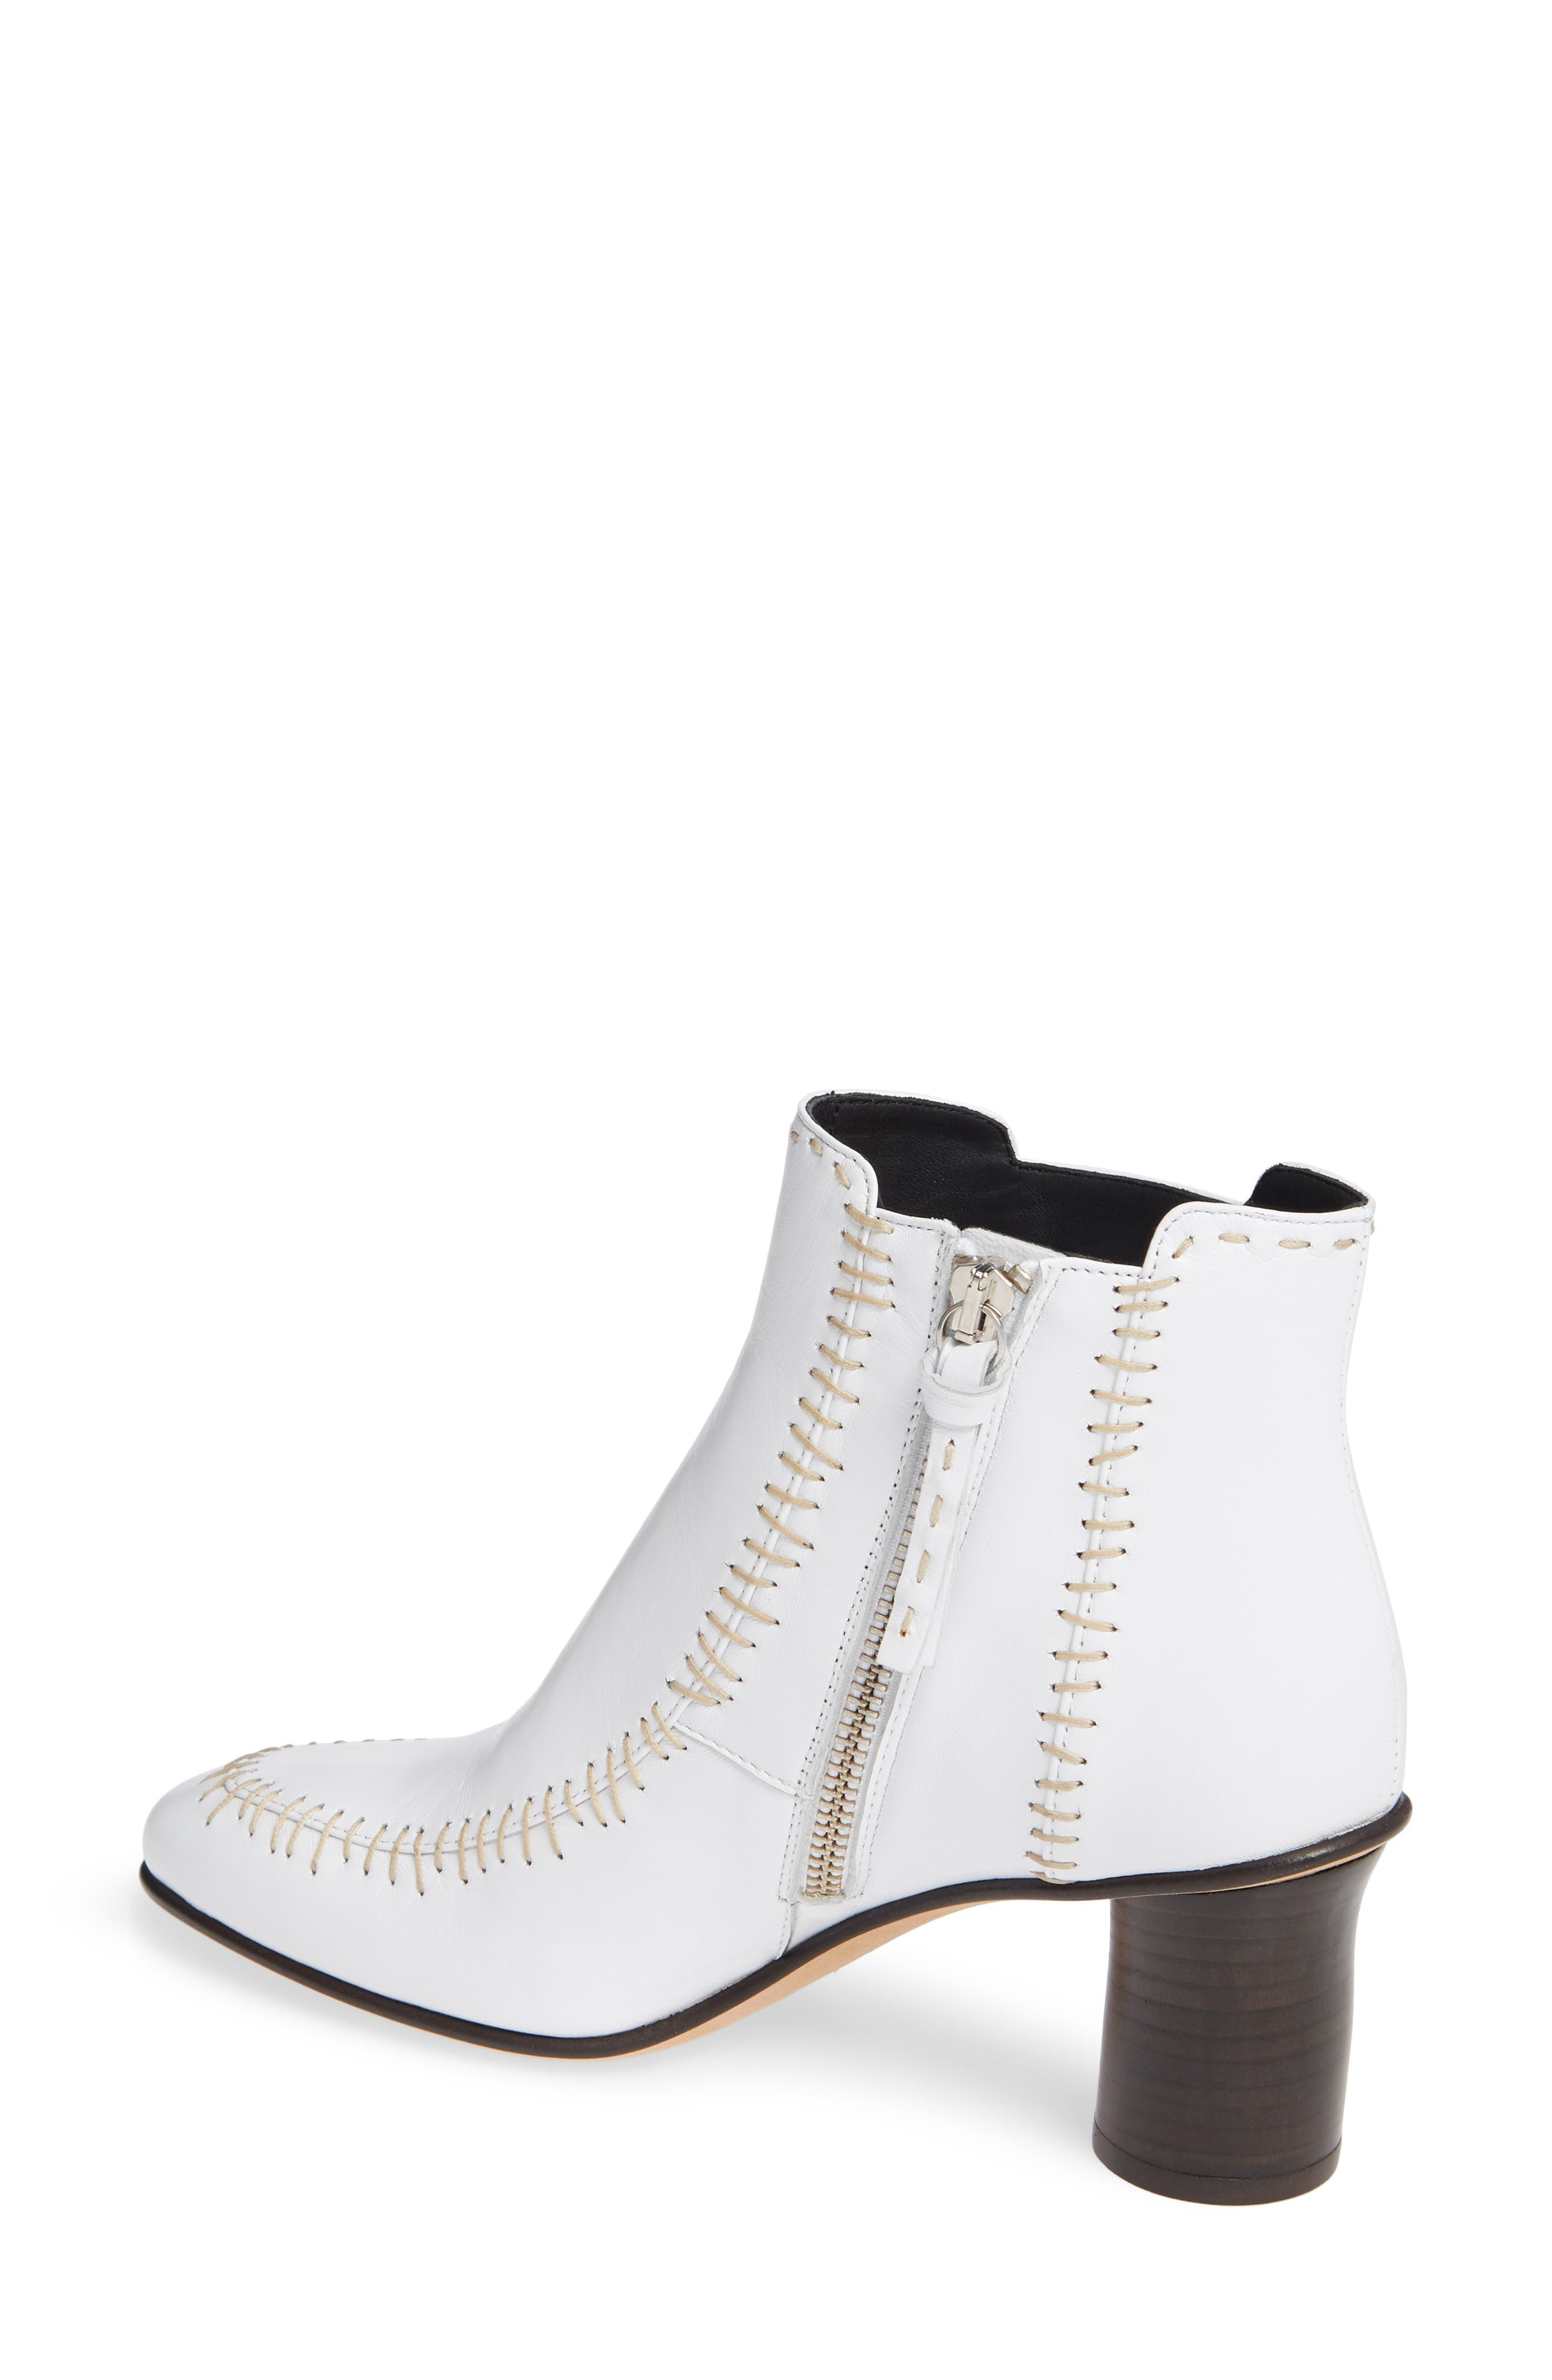 Stitch Leather Bootie,                             Alternate thumbnail 2, color,                             WHITE